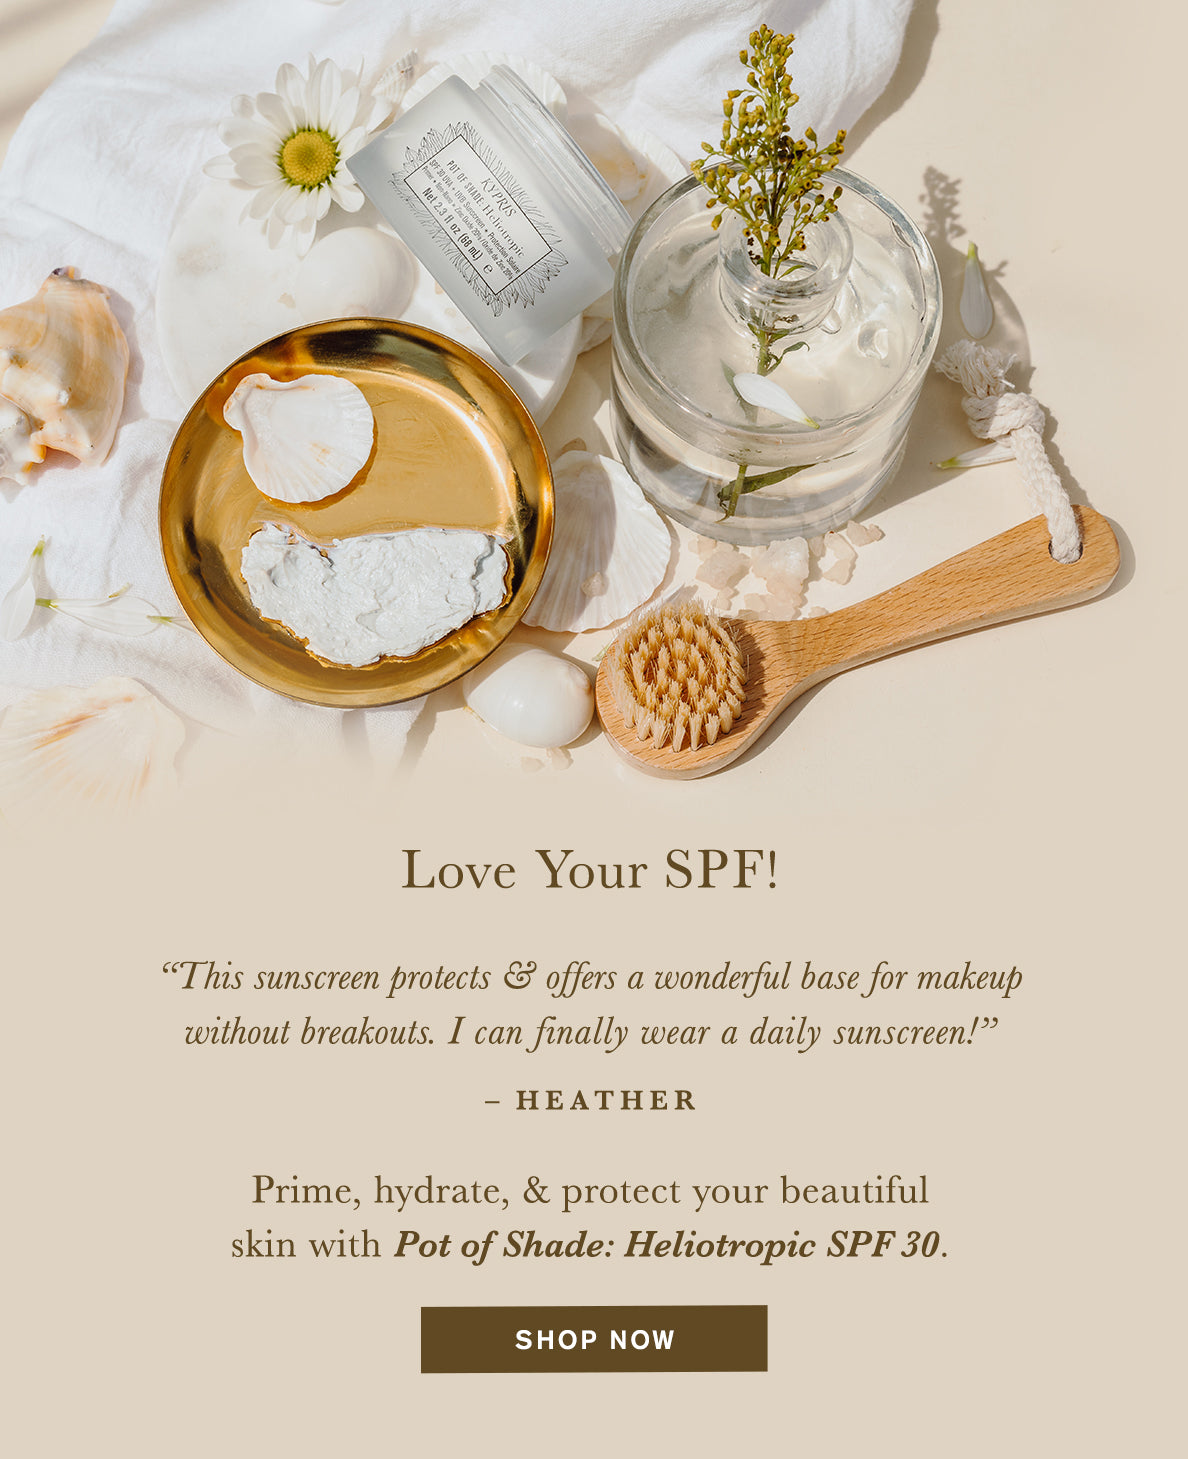 Love Your SPF!